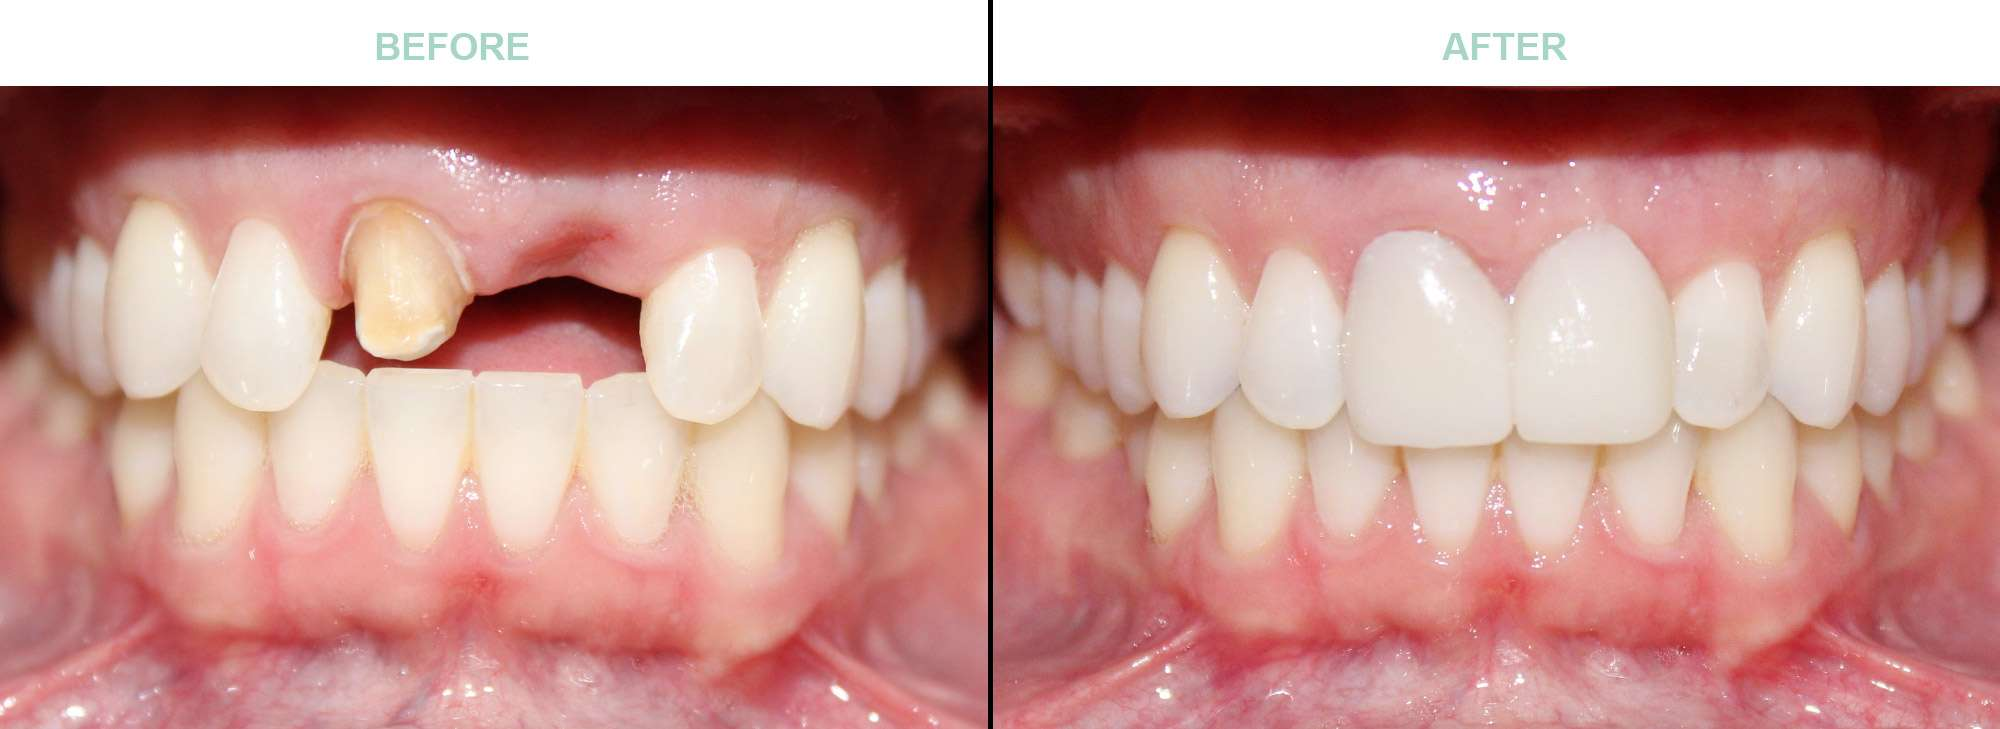 before-after-cosmetic-dentistry-surprise-az